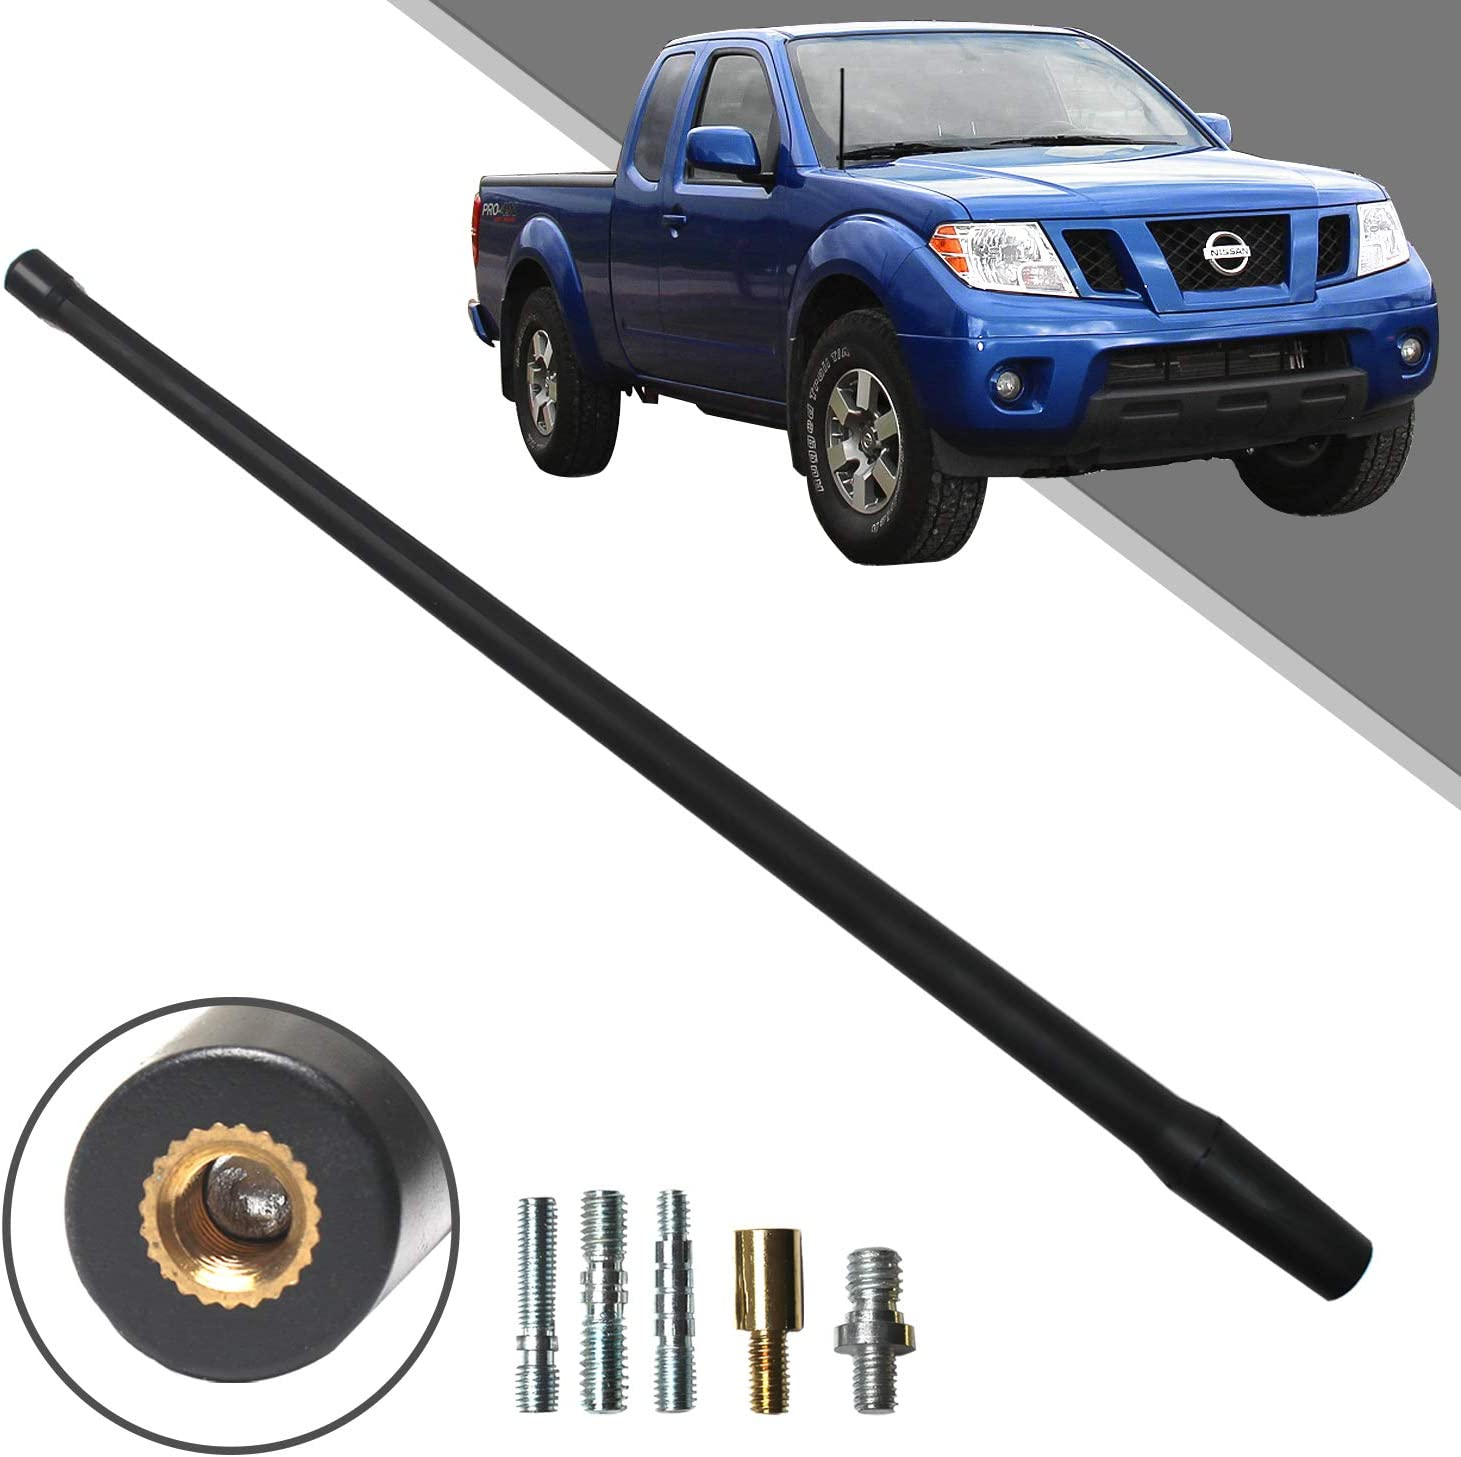 4.8 Inches TEKK Short Antenna Replacement for Ford F150 2009-2020 Designed for Optimized FM//AM Reception